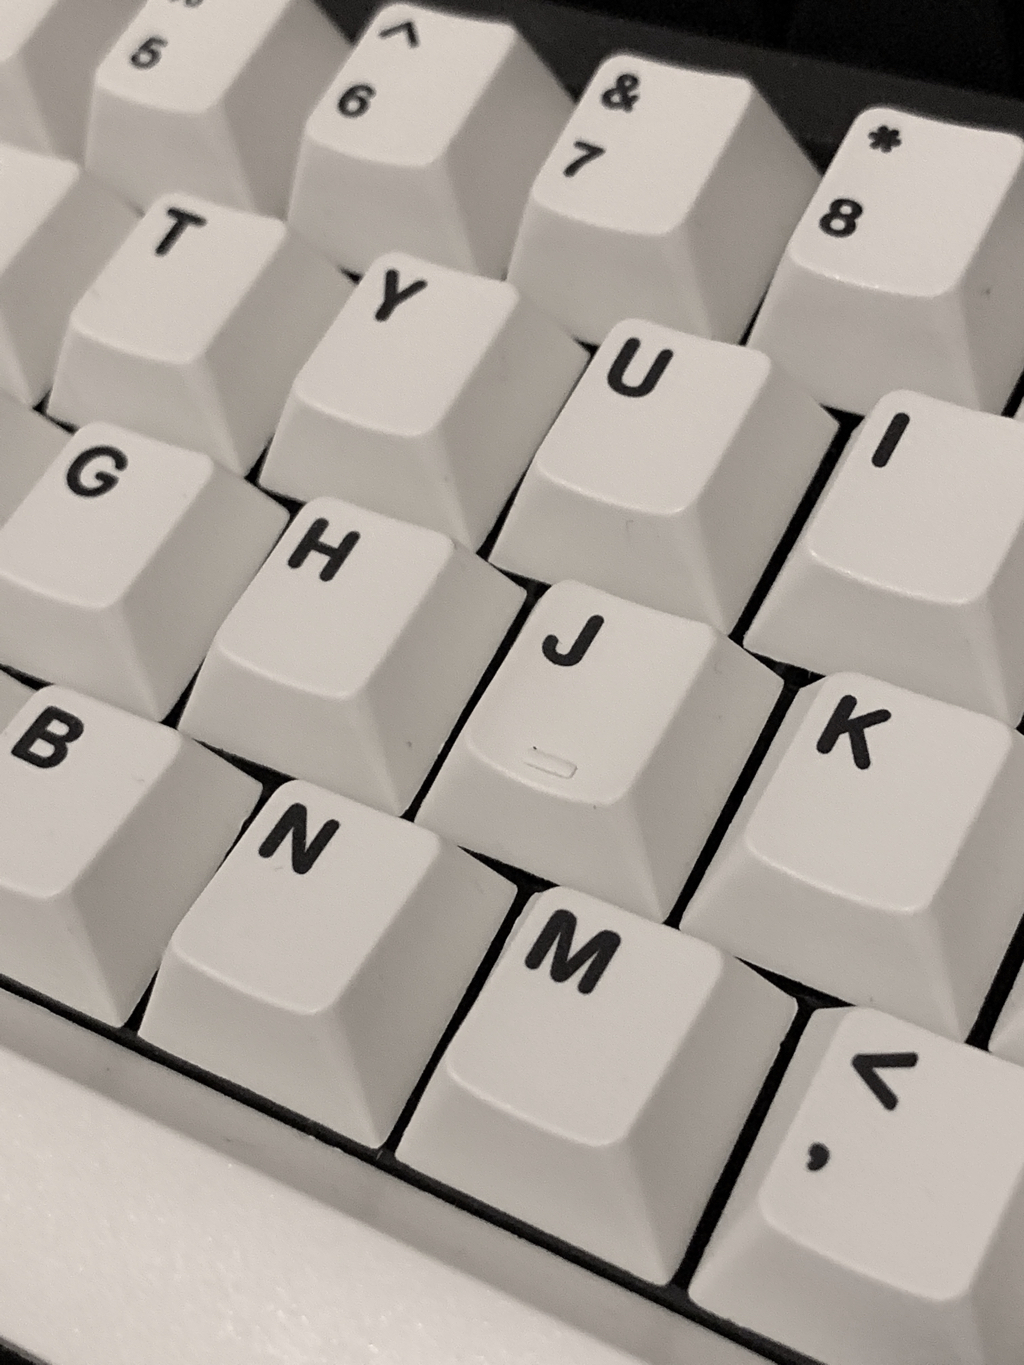 Tada68 Keyboard Review (Kailh Box Jade Switches) - Leaf&Core